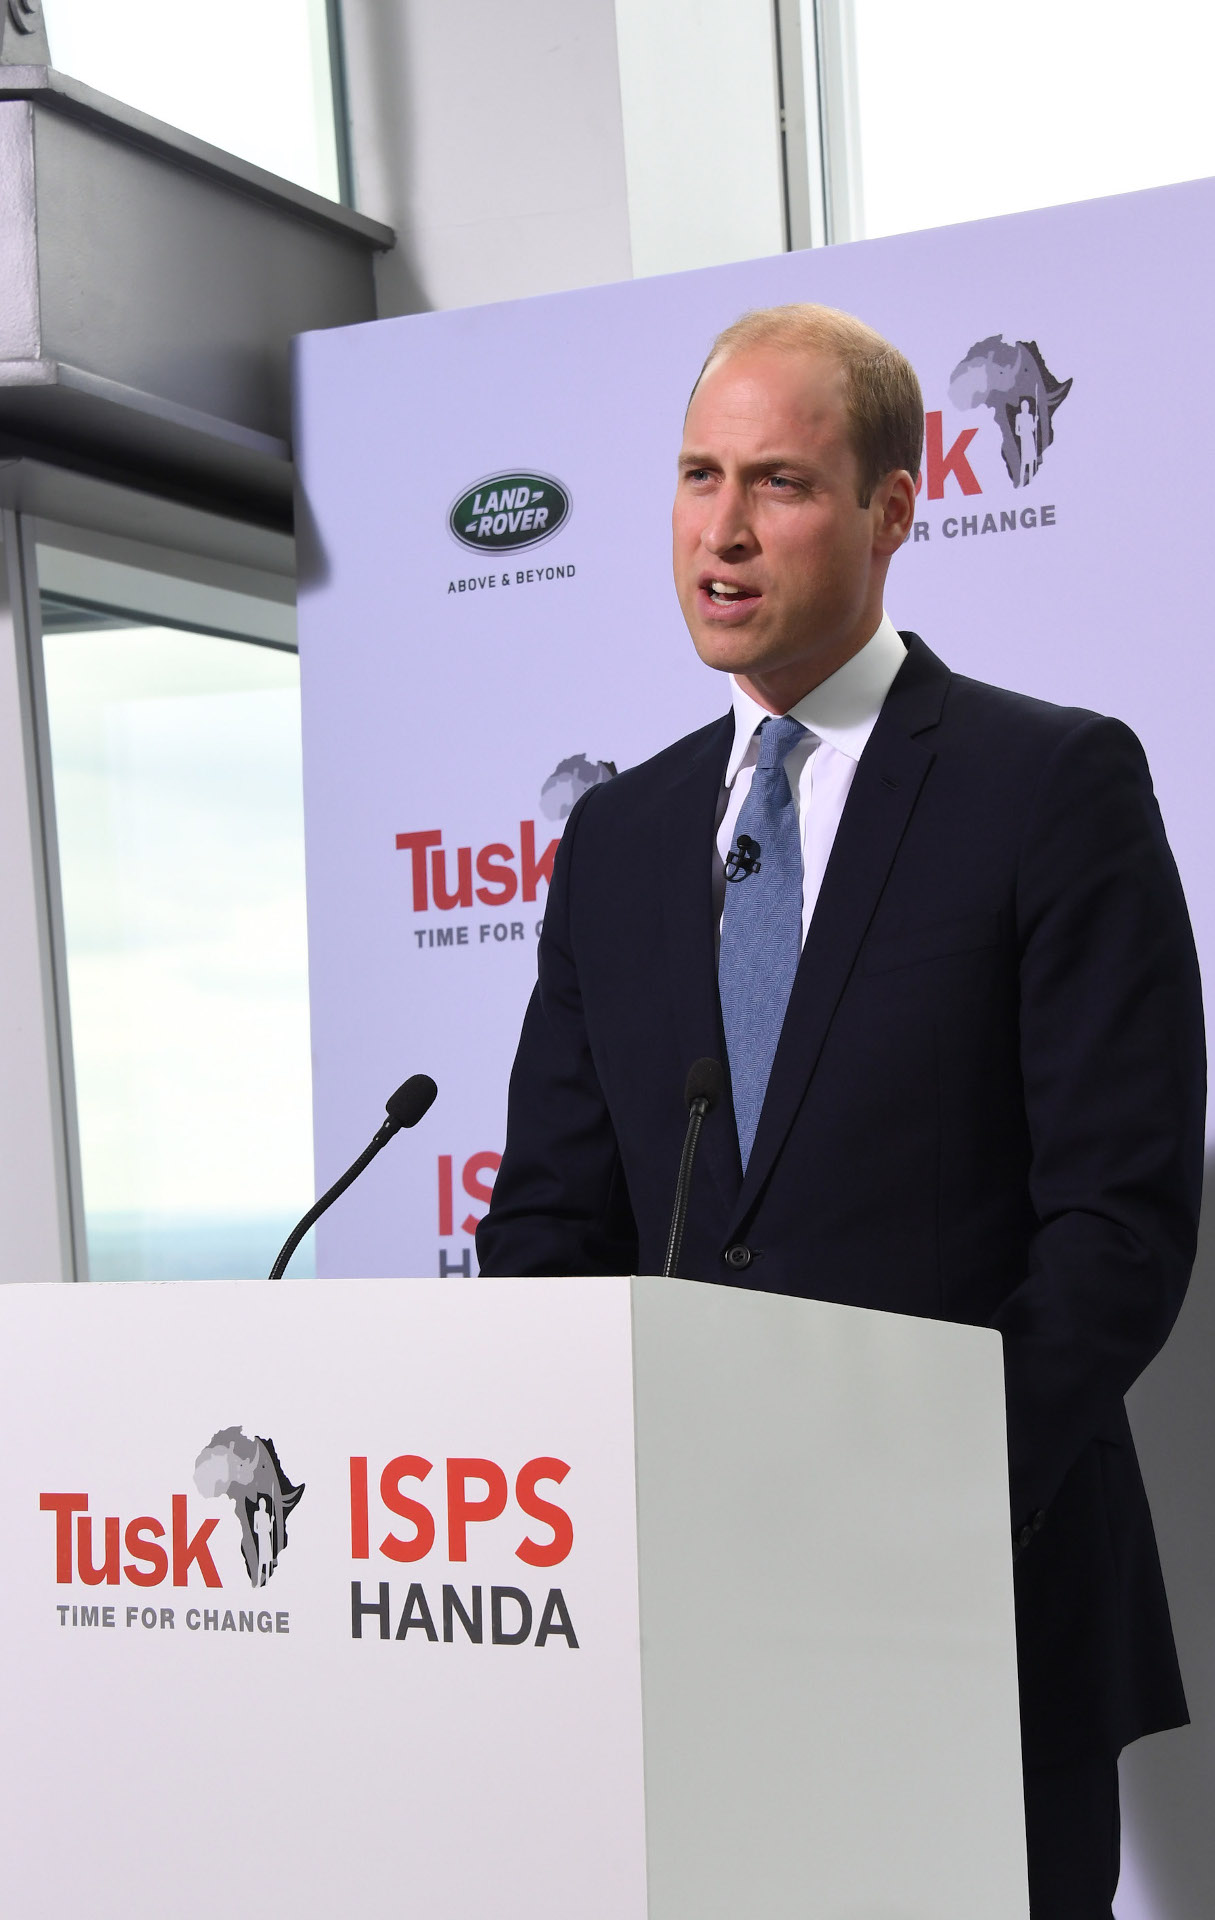 Prince William Calls for Worldwide Ban on Ivory Sales